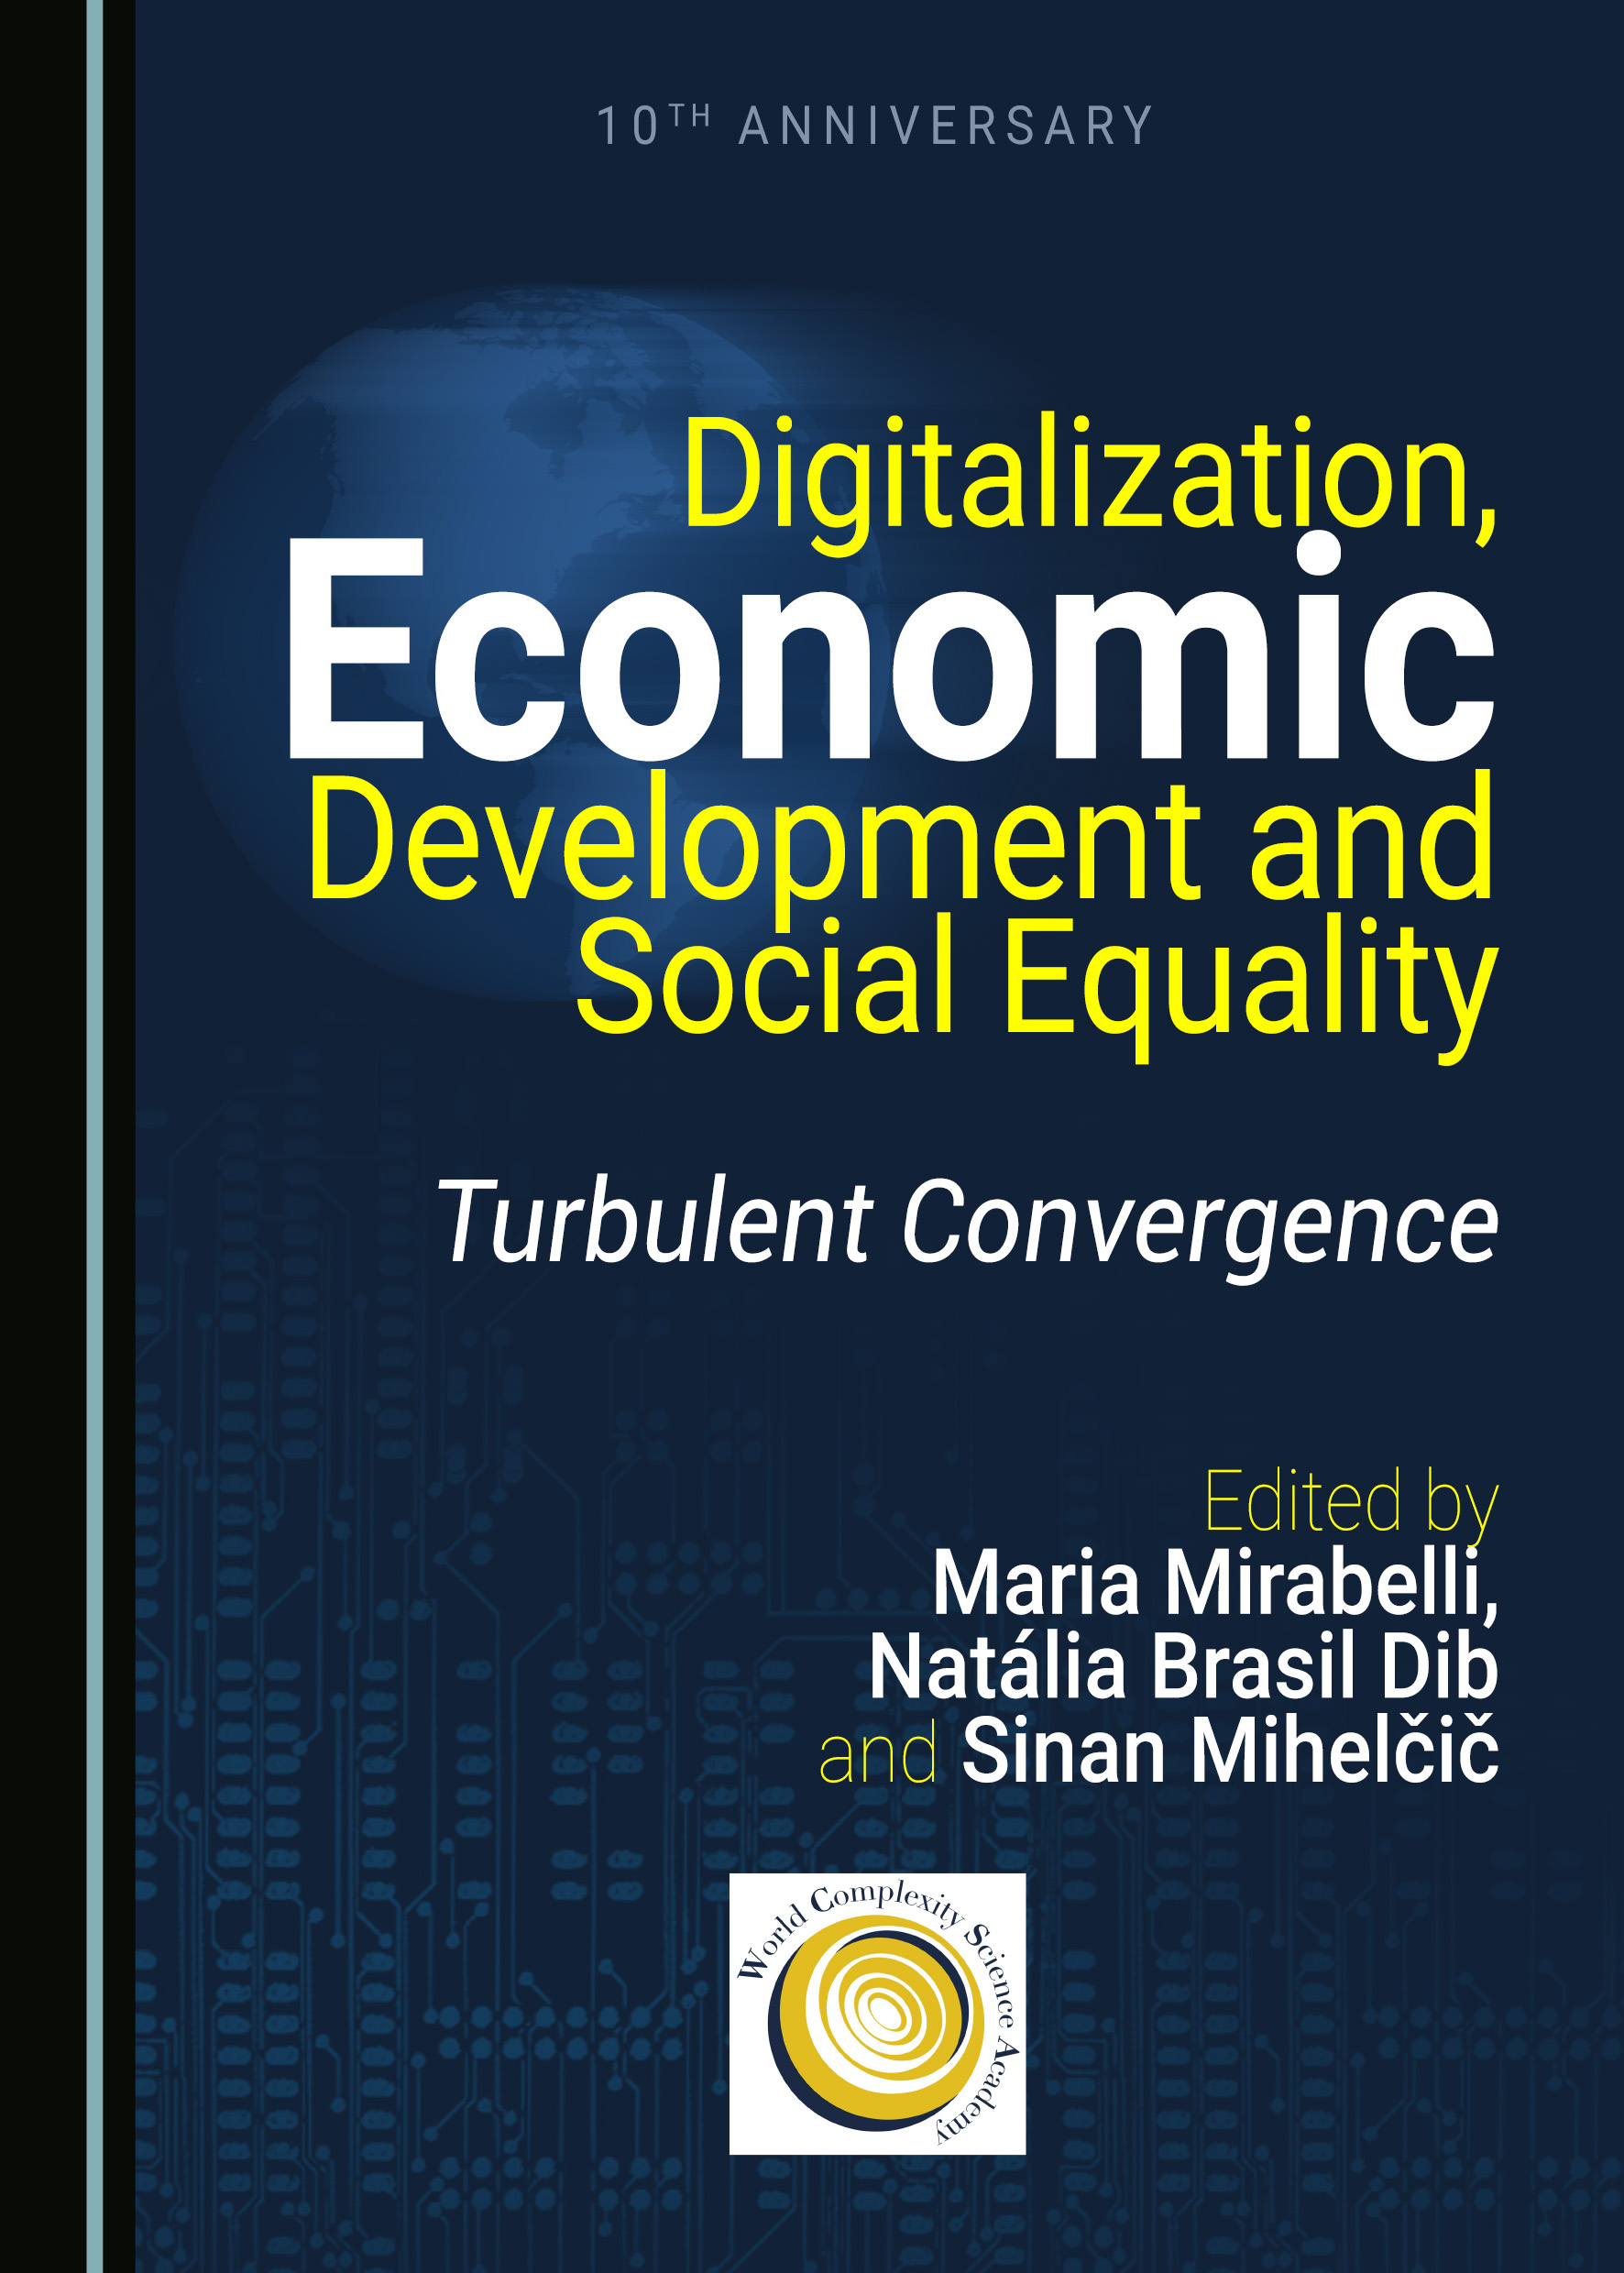 Digitalization, Economic Development and Social Equality: Turbulent Convergence